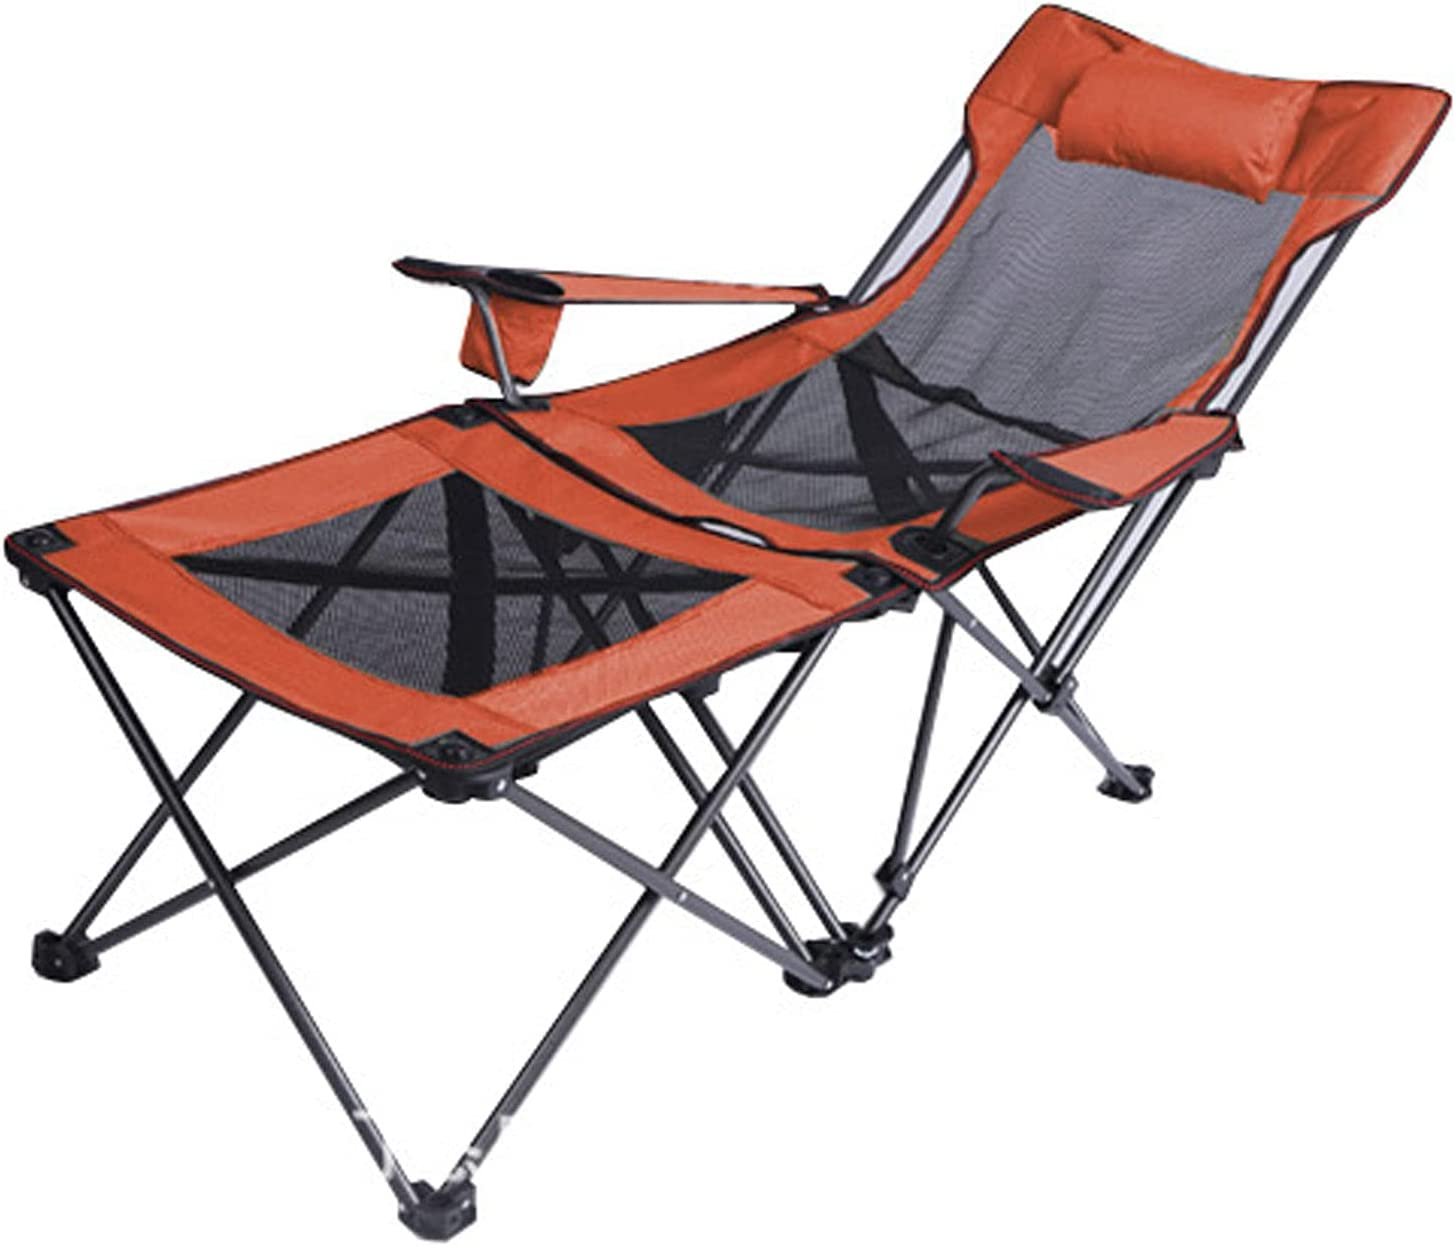 WSCQ Camping Chair with Sacramento Mall Footrest Cup Mesh Max 90% OFF Chairs Outdoor H